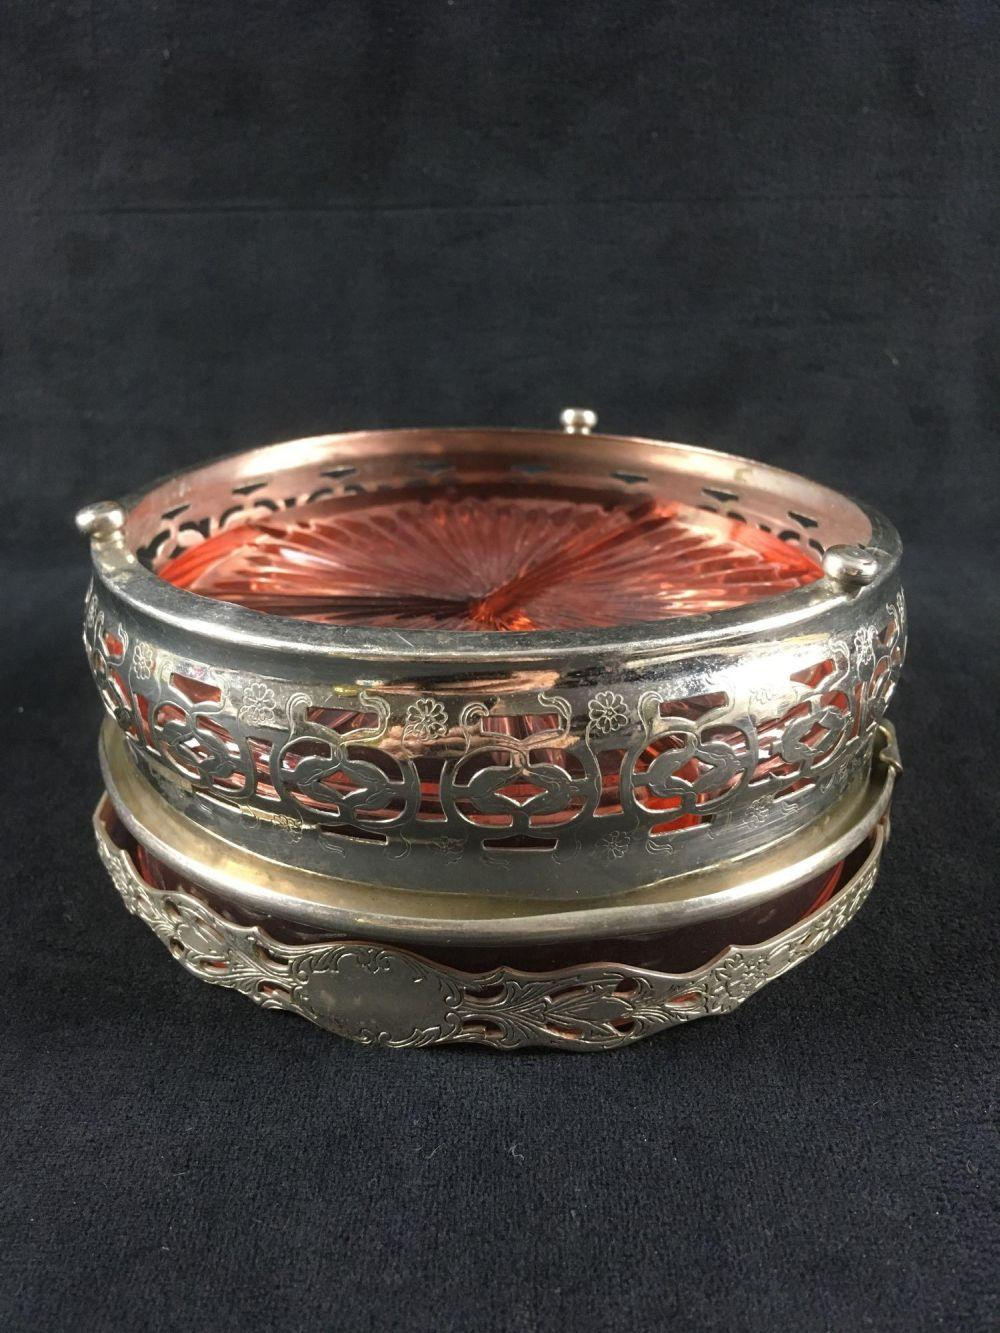 Lot 143: Vintage Pink Depression Glass Divided Condiment Dish in Plated Caddy